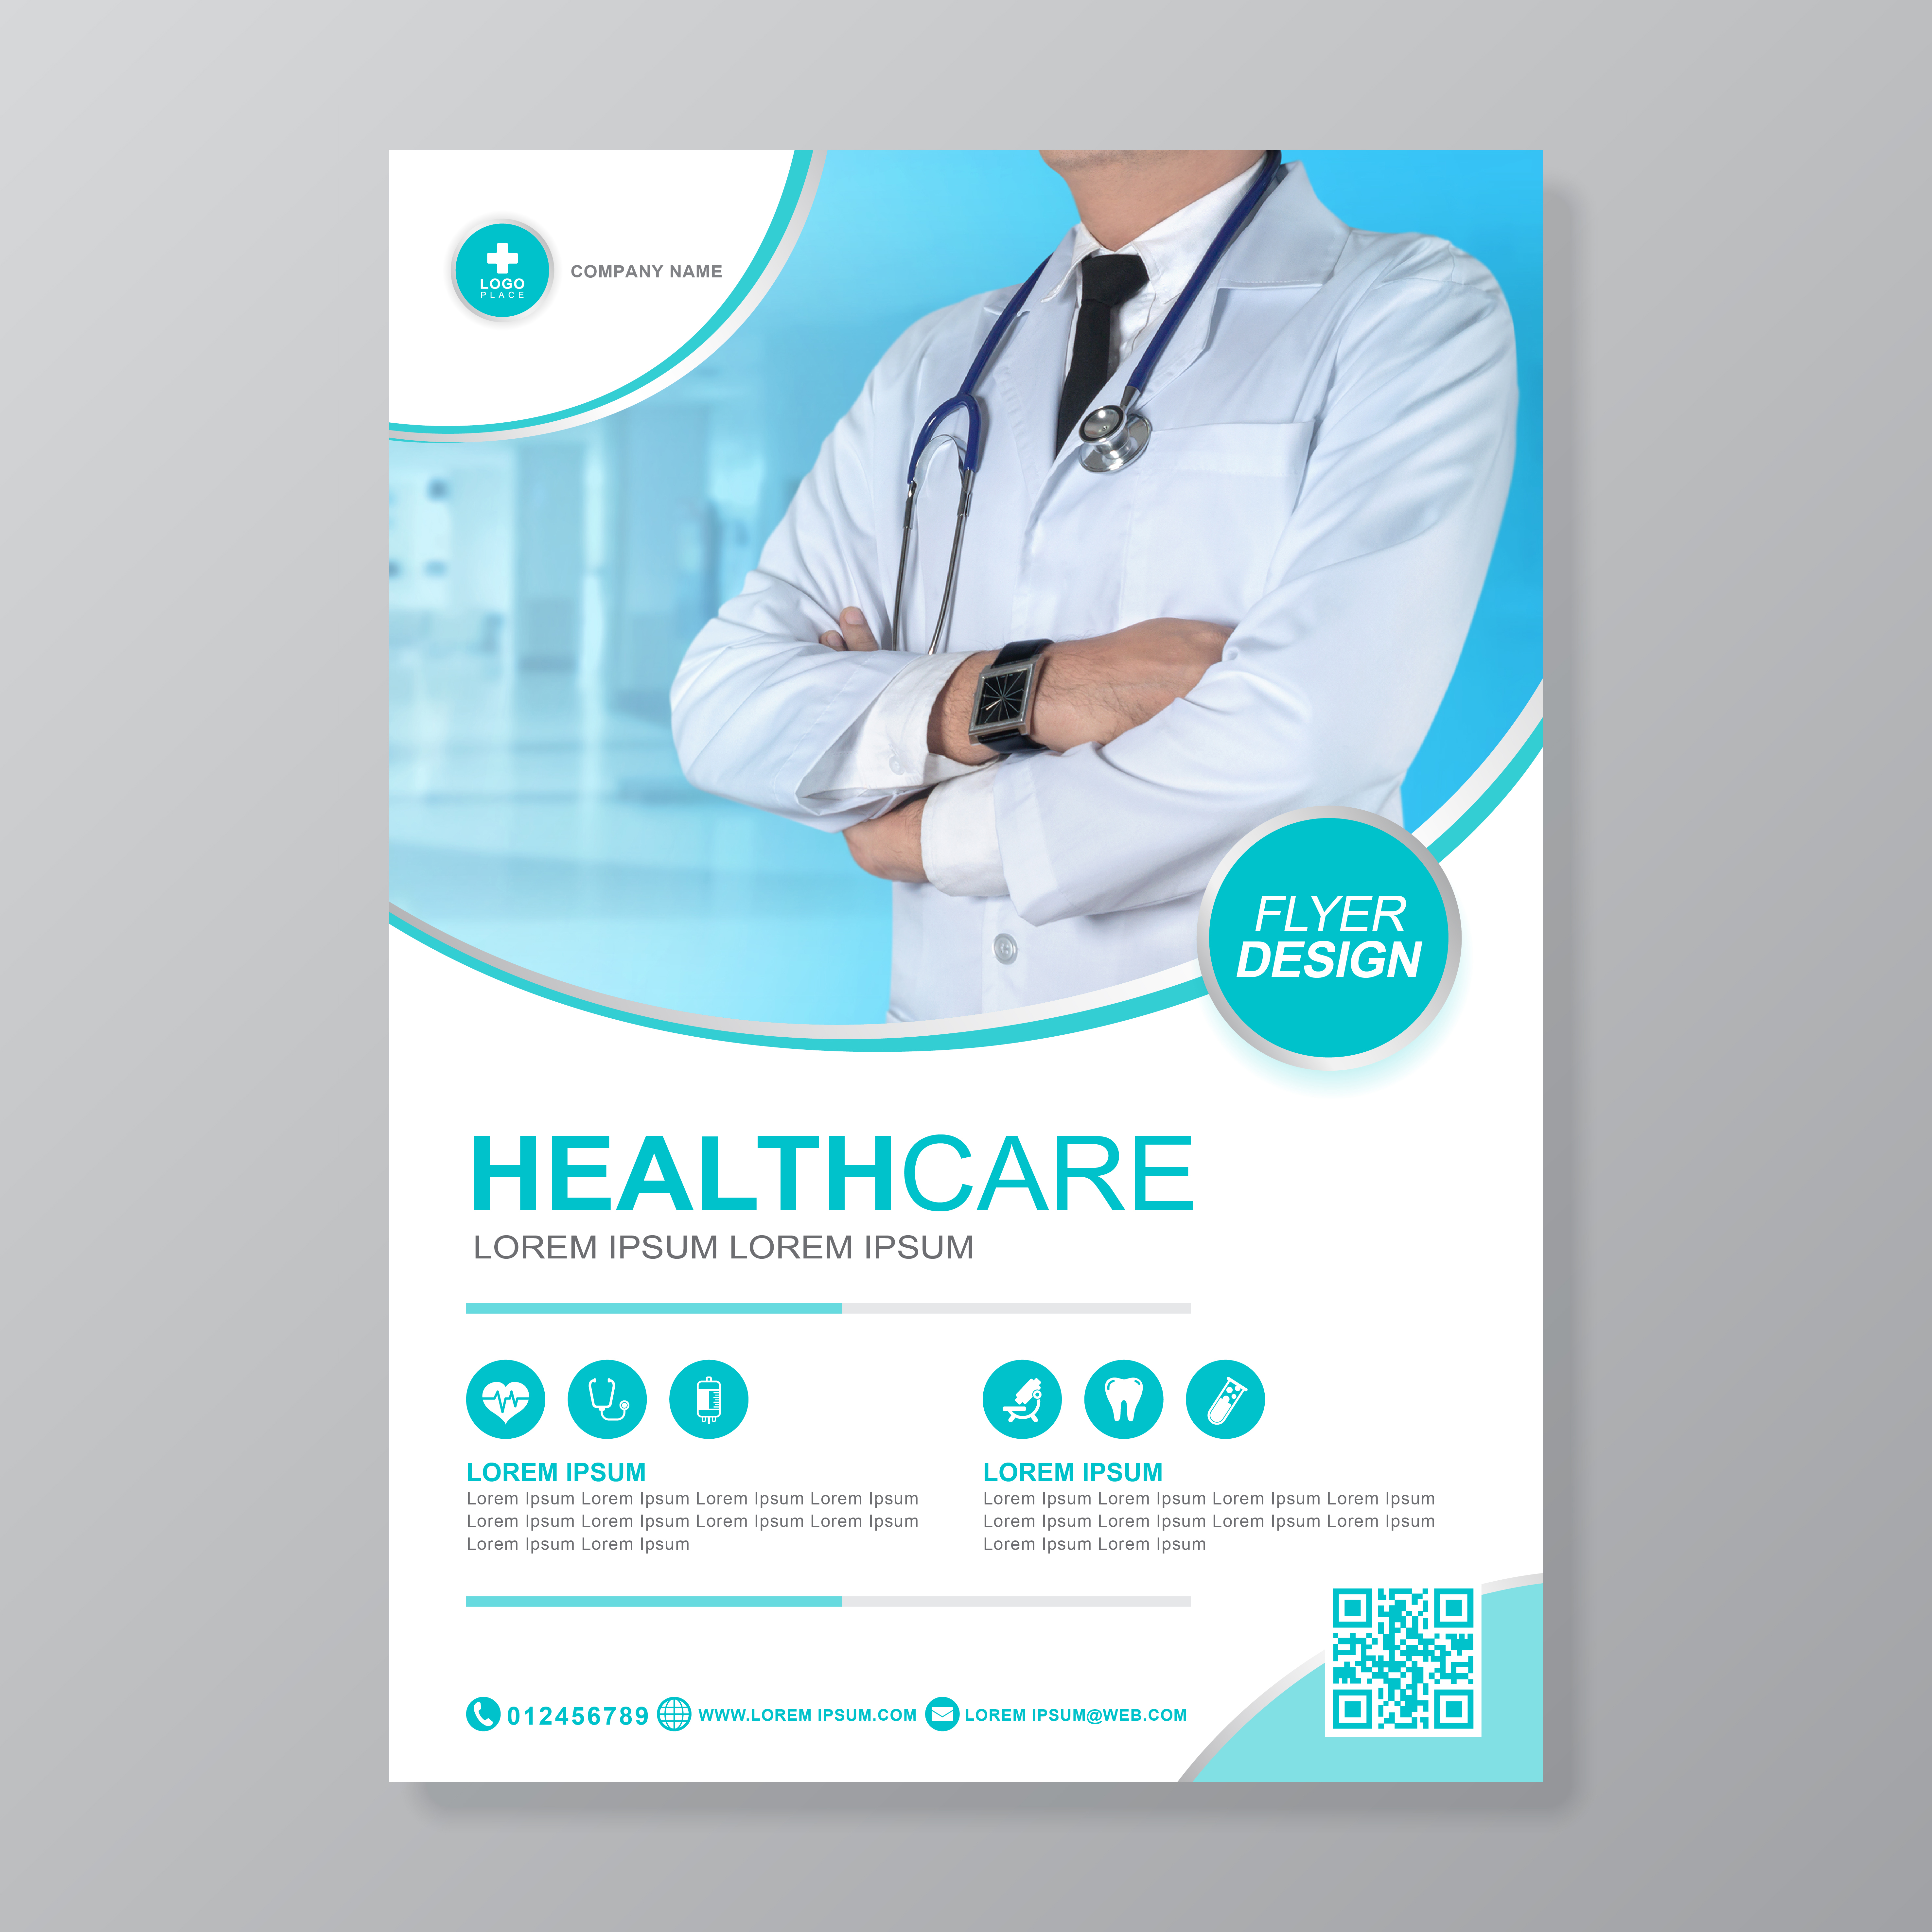 Medical Brochure Template: Healthcare Cover A4 Template Design And Flat Icons For A